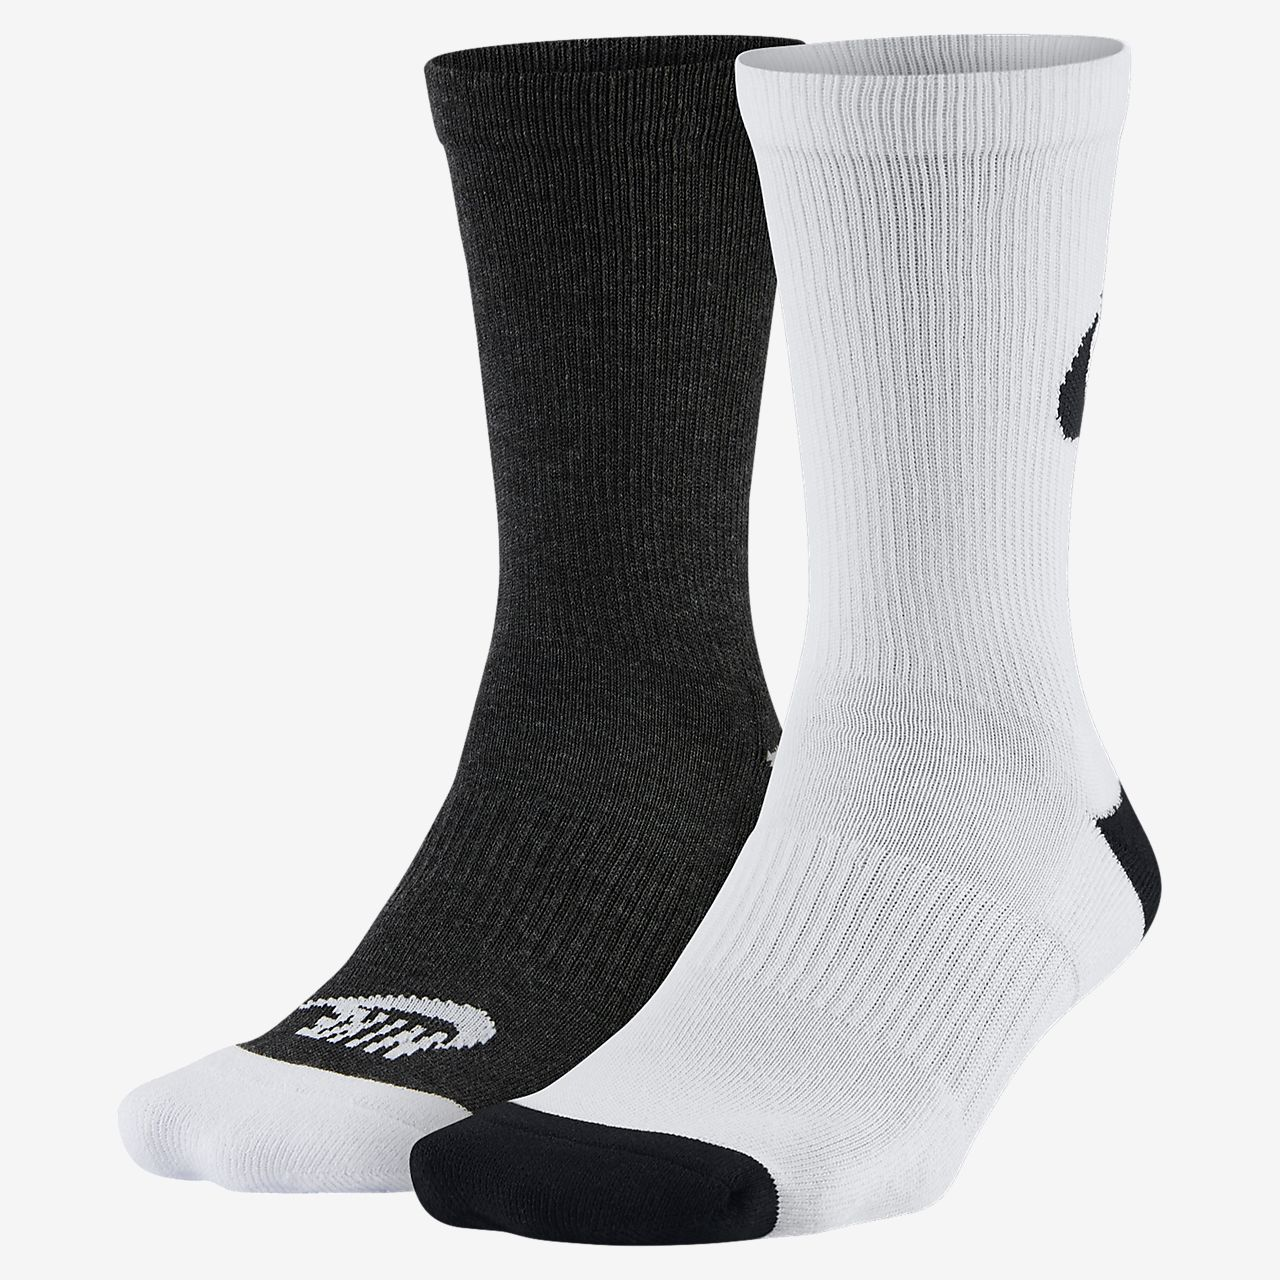 08b06516 Nike Sportswear Just Do It Crew Socks (2 Pair)